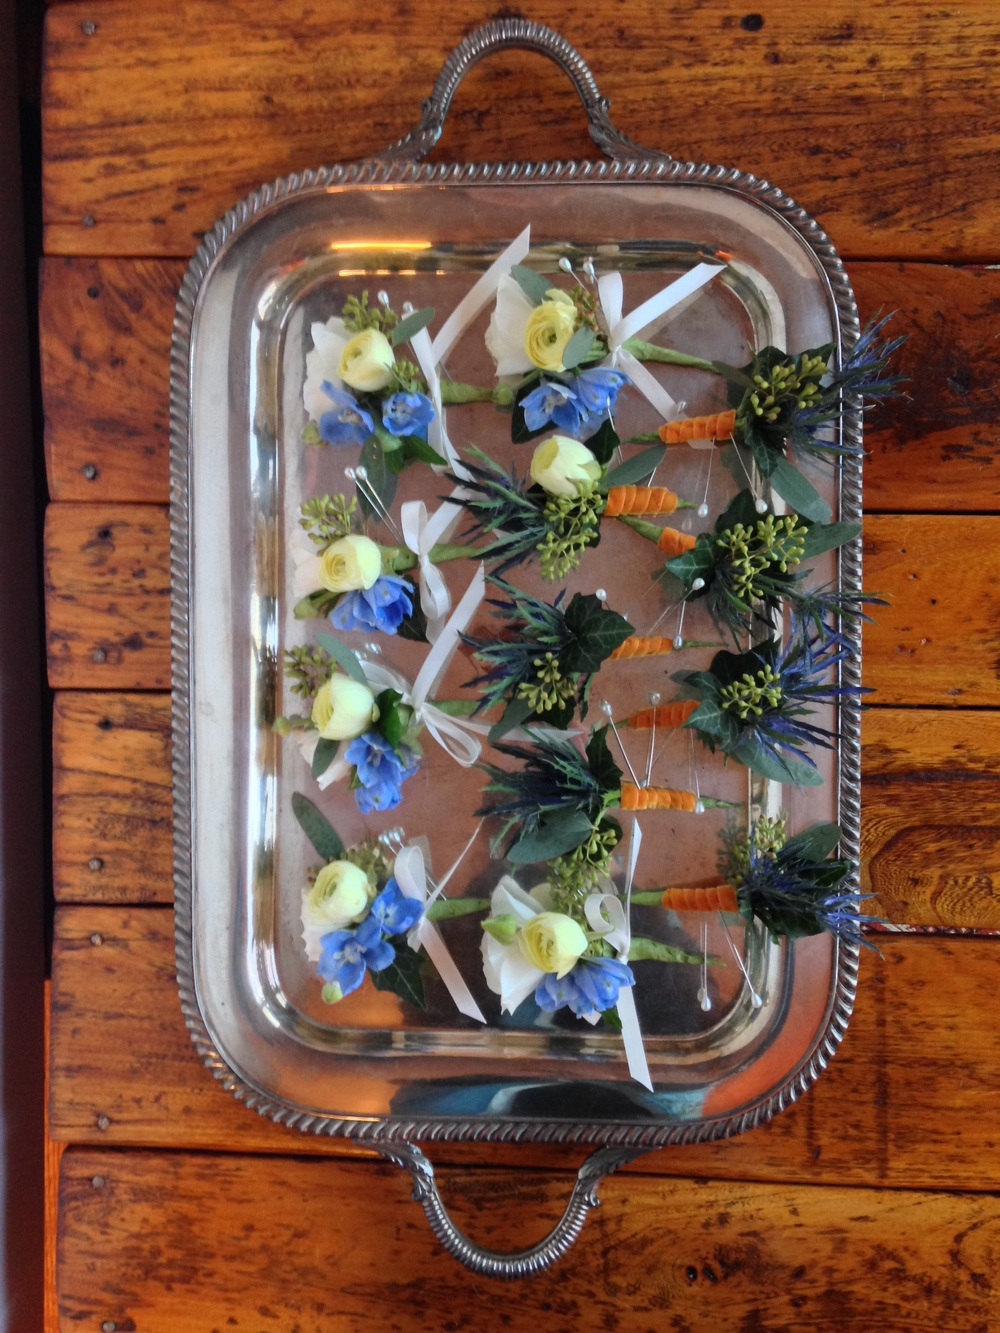 Photo by Catherine G. Damwood LLC, Image of Silver Tray with Pin-On Corsages and Boutonnieres